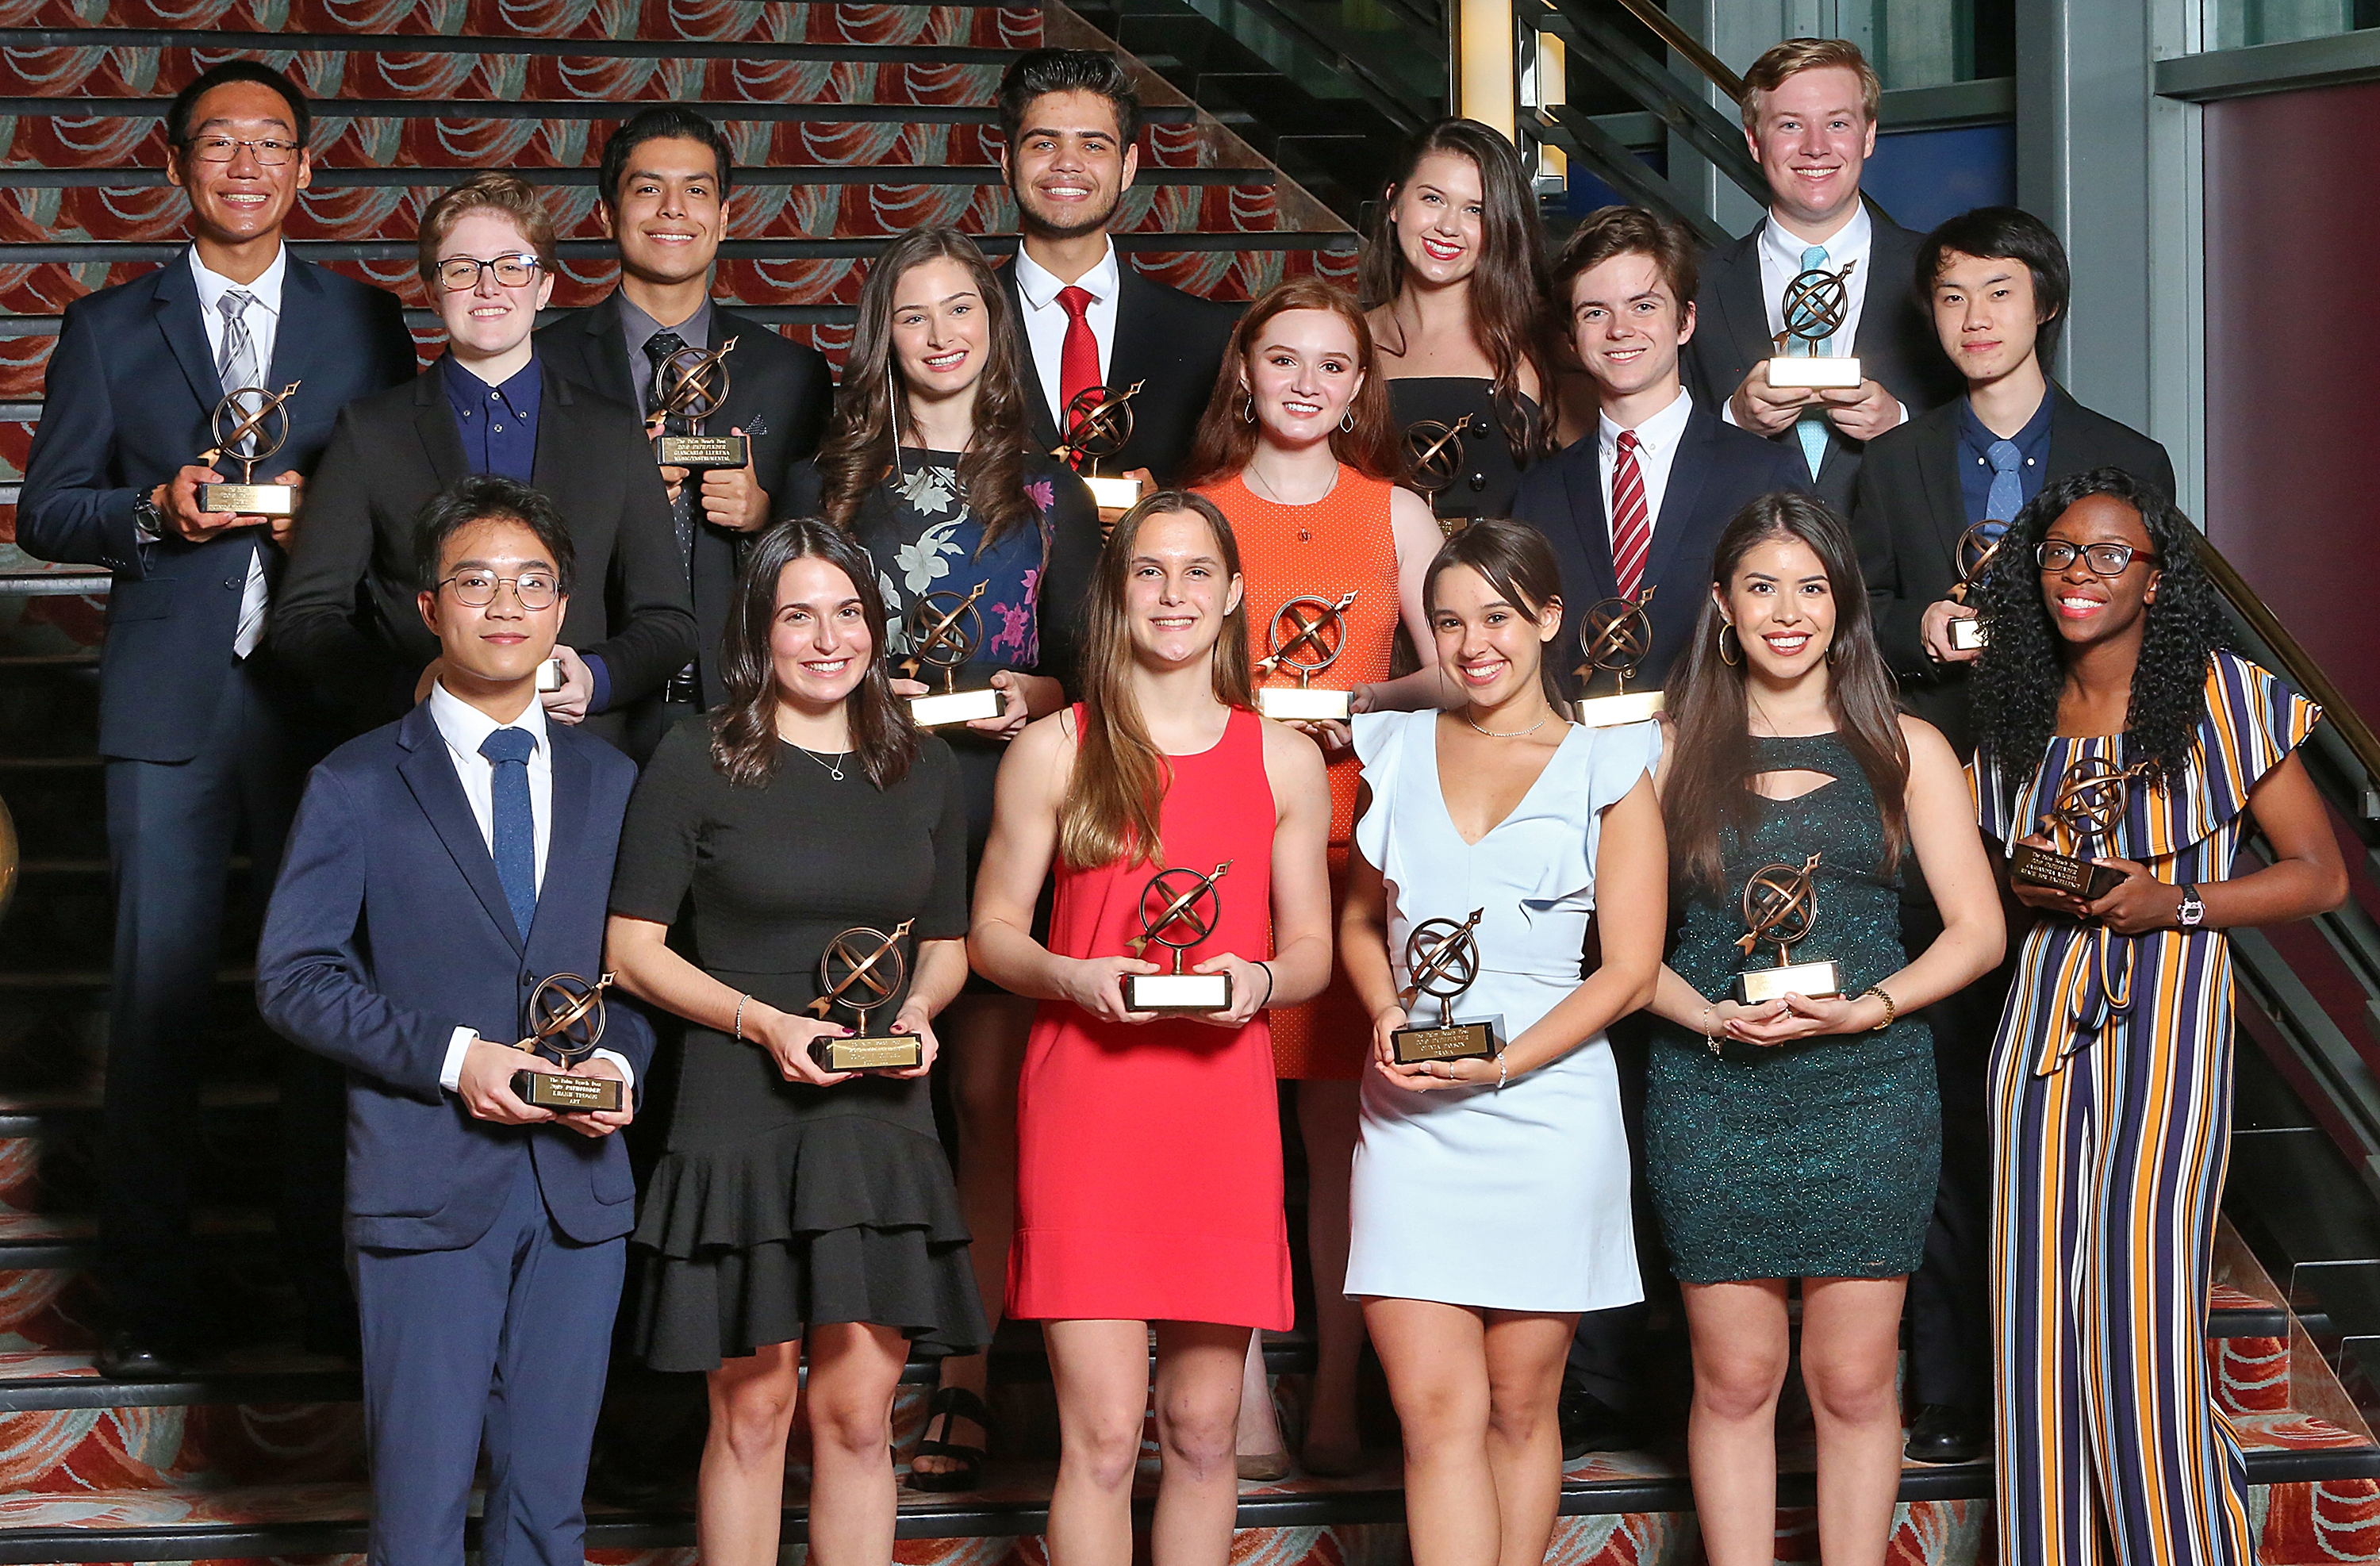 The winner of the 2018 Pathfinder High School Scholarship Awards pose for a photo at the Kravis Center for the Performing Arts in West Palm Beach. (Tim Stepien/The Palm Beach Post)